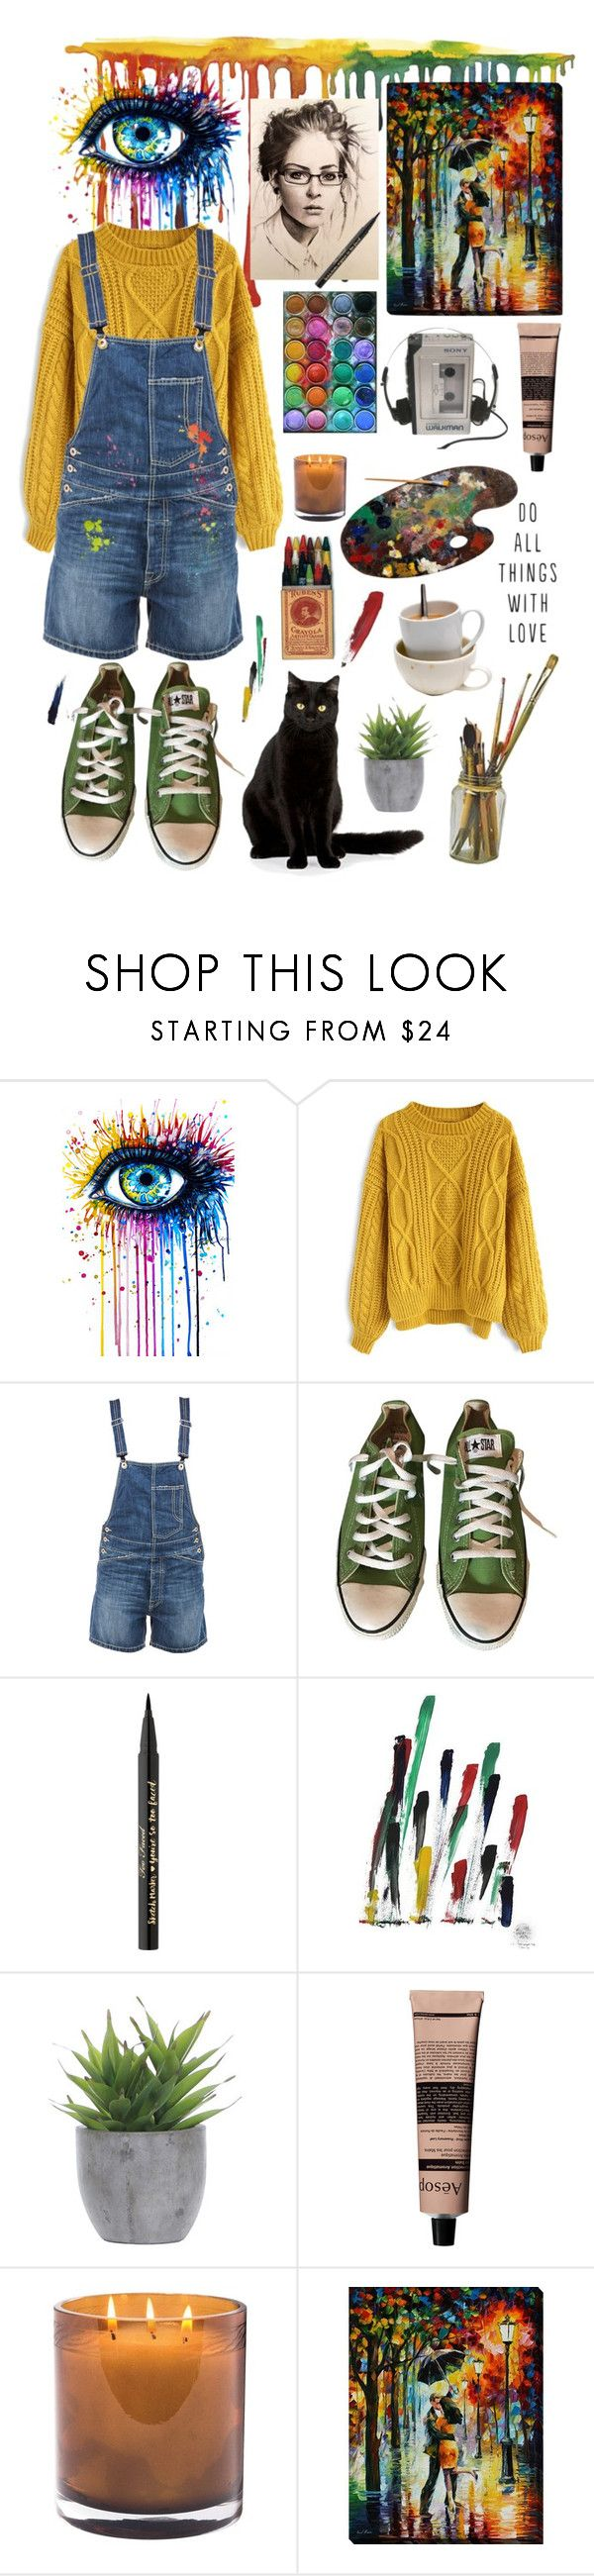 """Artist"" by nika105 ❤ liked on Polyvore featuring Chicwish, Dondup, Converse, Too Faced Cosmetics, NOVICA, Lux-Art Silks, Aesop, Laura Mercier, artist and artgirl"